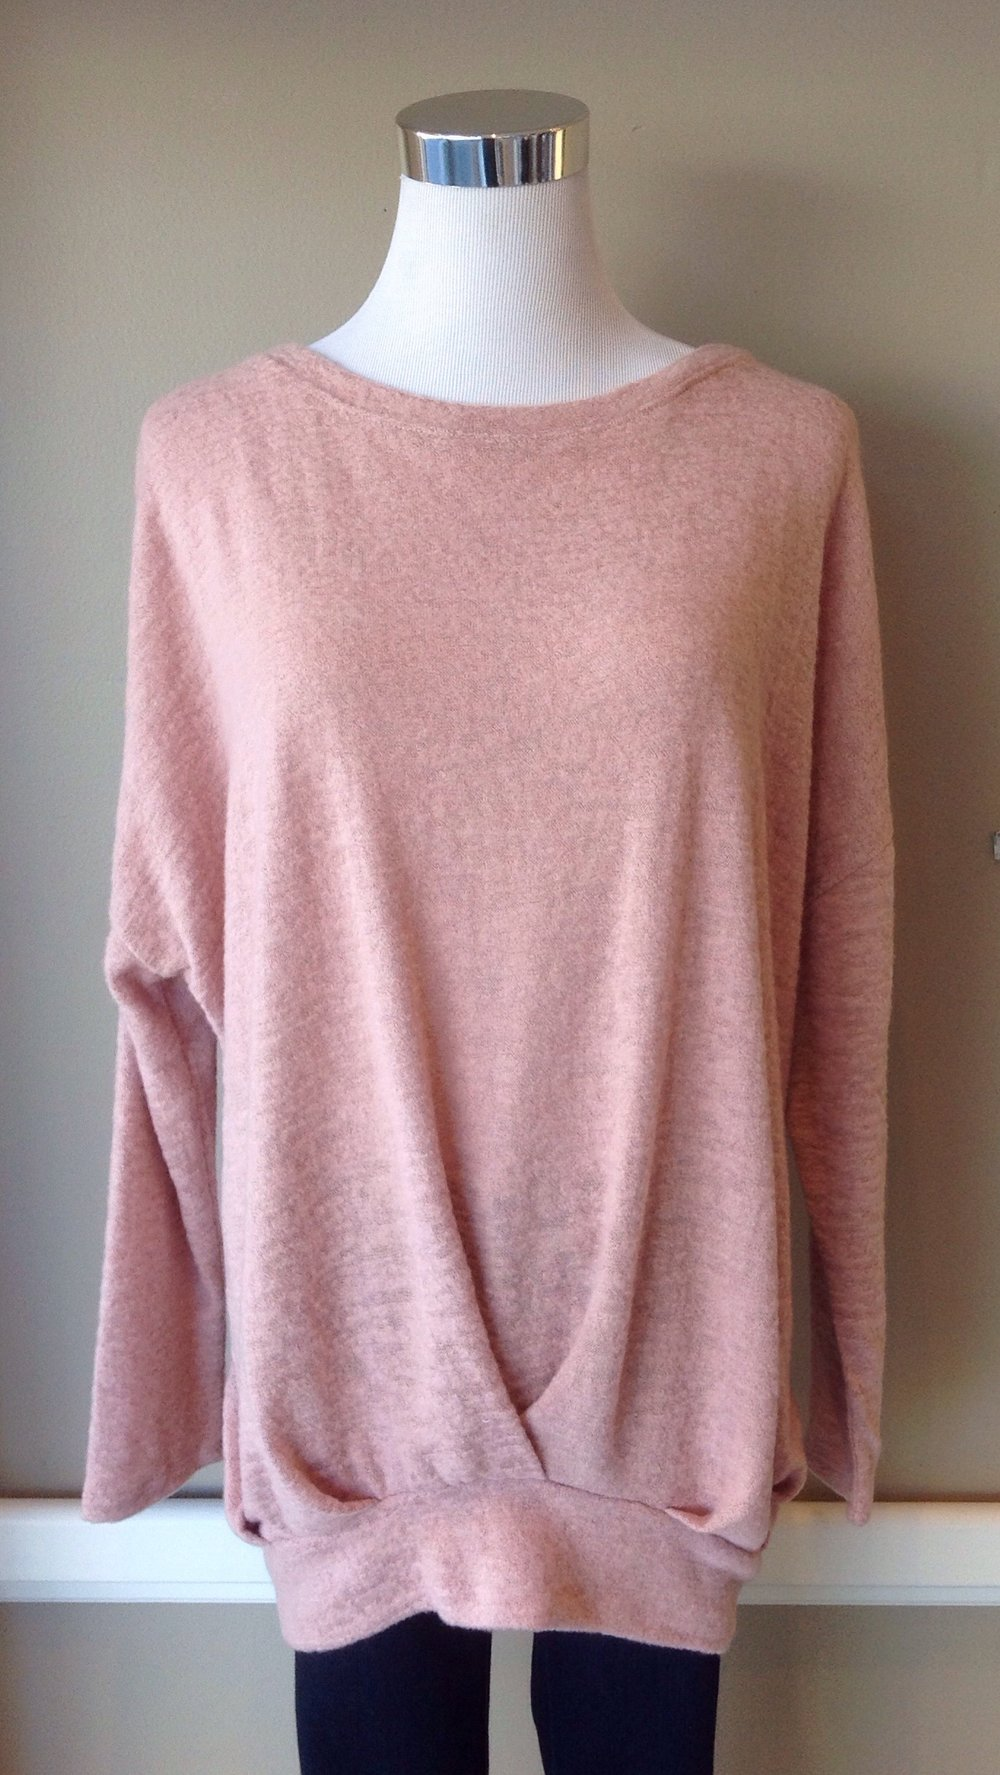 Front pleat sweater with batwing sleeves in blush, $35. Also available in charcoal and taupe.